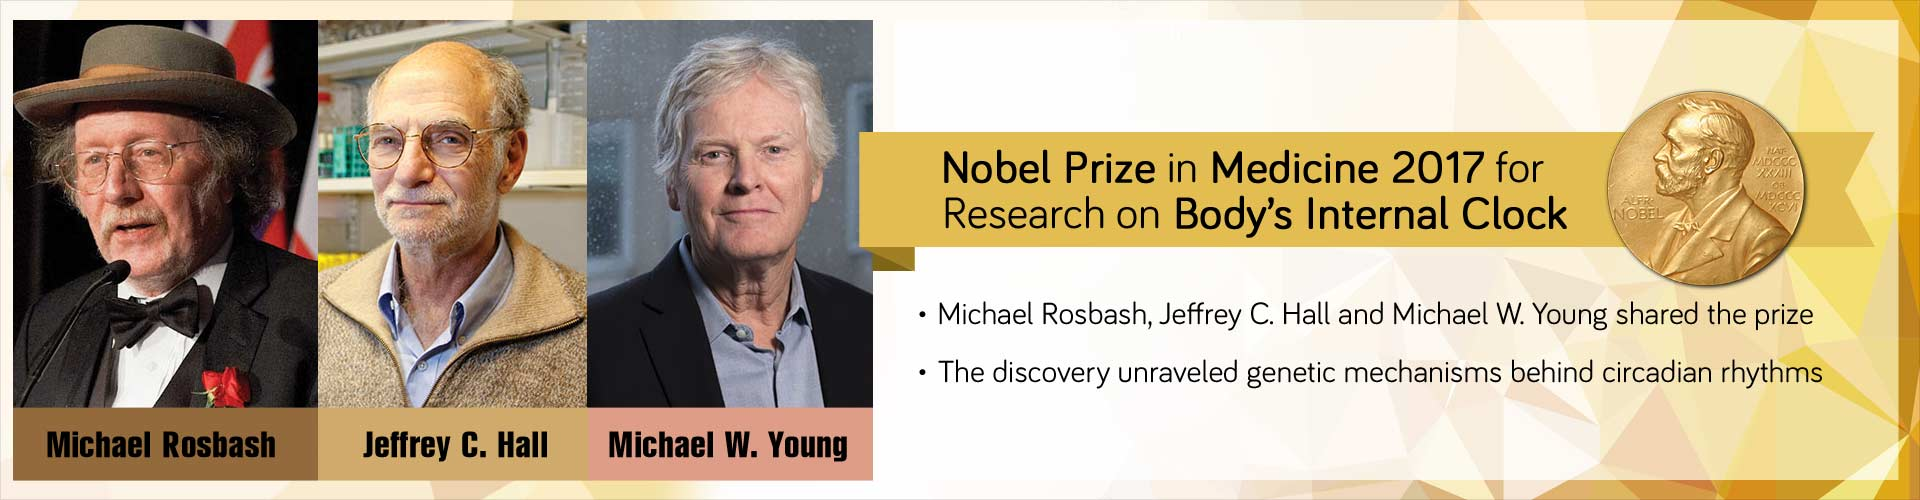 Nobel Prize in Medicine 2017 For Research On Body's Internal Clock